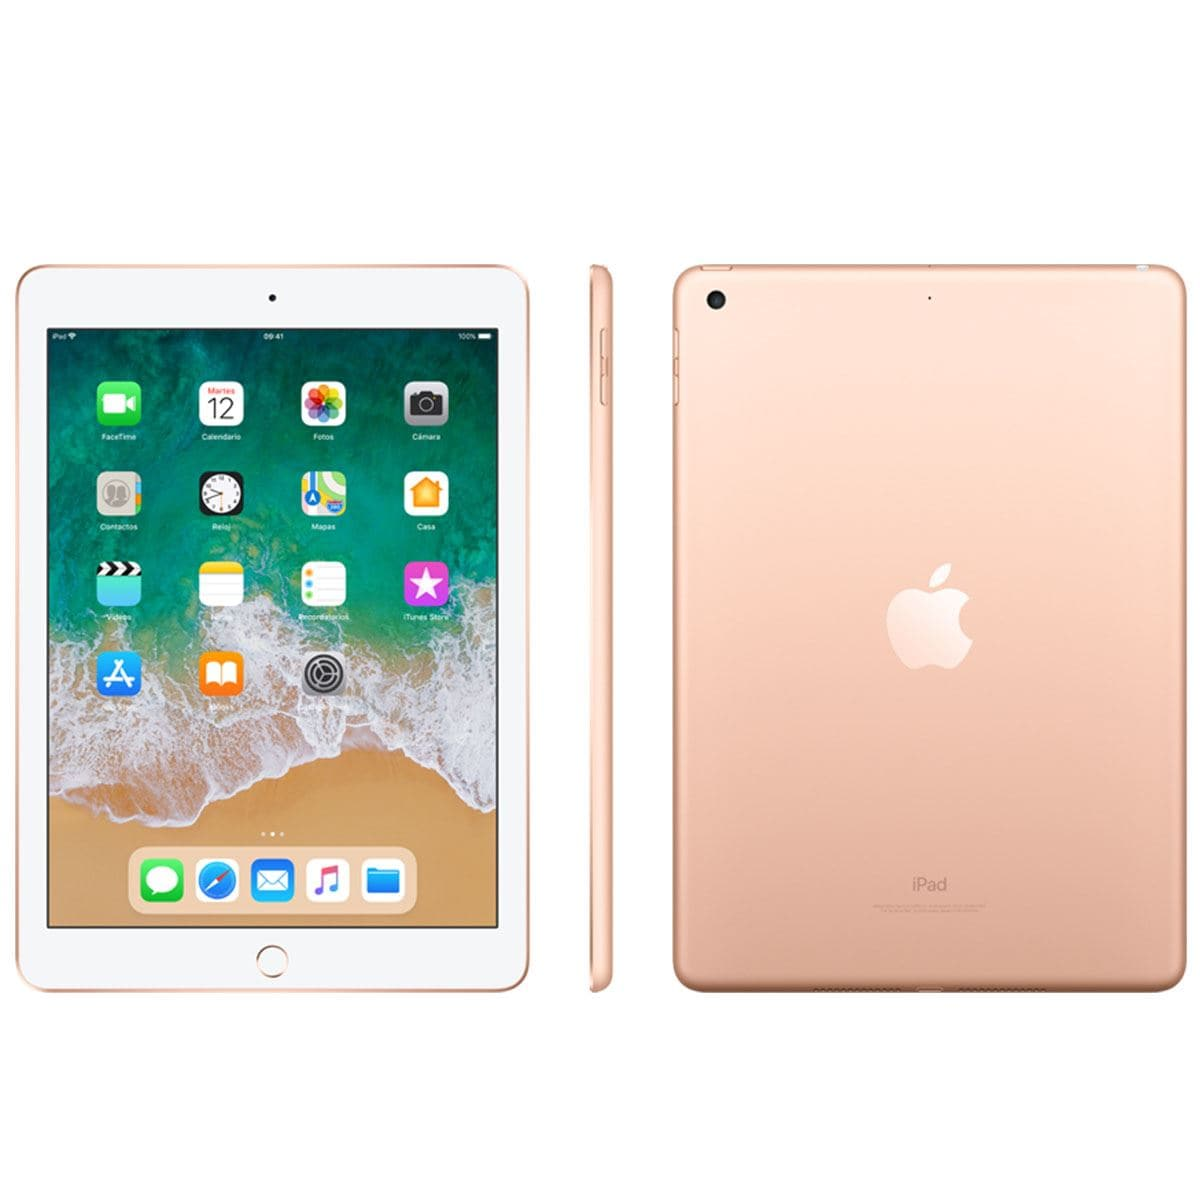 Ipad WI-FI 128GB Gold